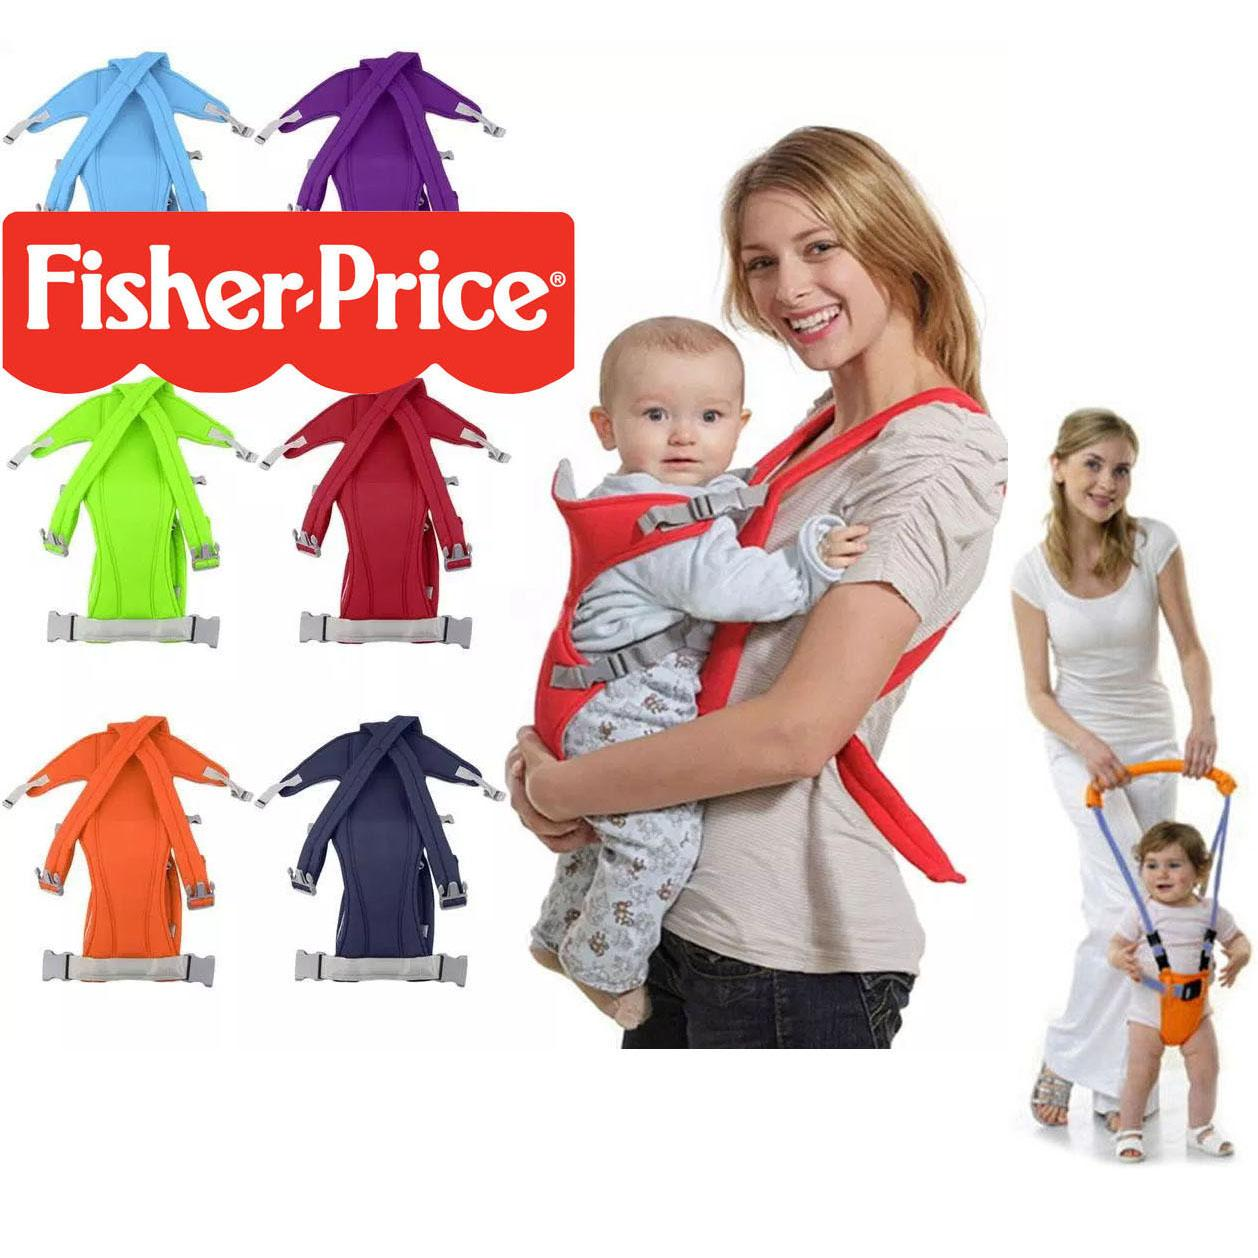 2019 year for women- How to fisher wear price baby carrier